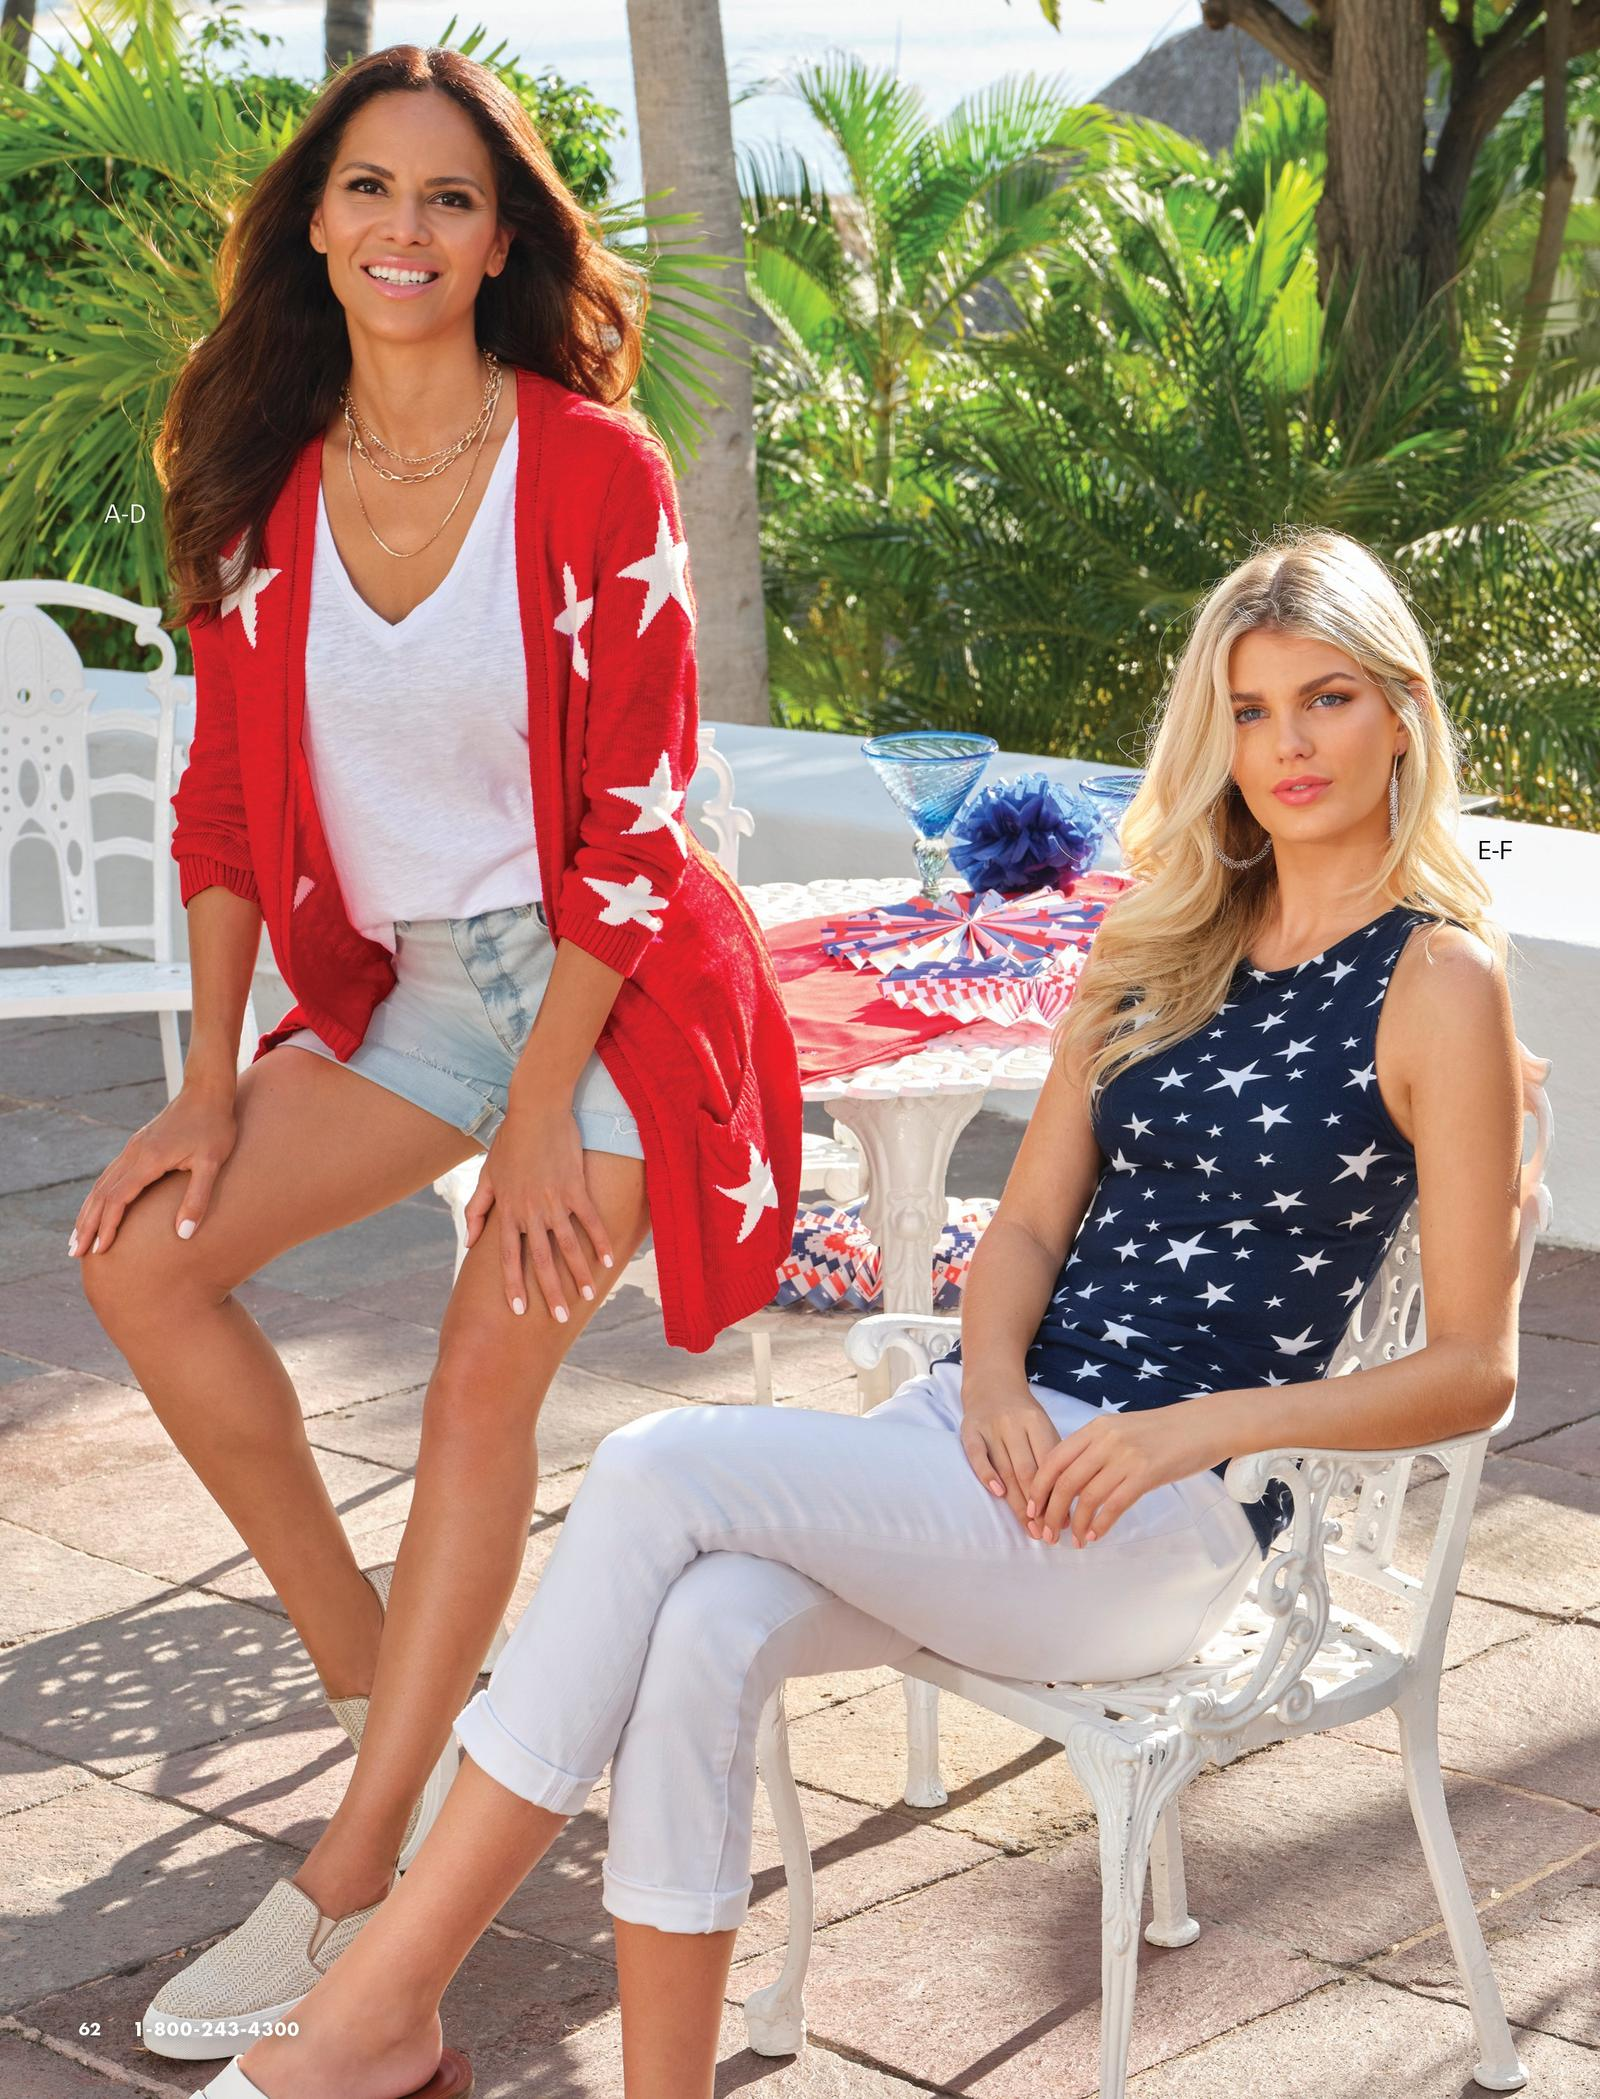 left model wearing a red and white star print cardigan, white tee, denim shorts, and slip-on sneakers. right model wearing a navy and white star print high neck top, white jeans, and white double-strap sandals.